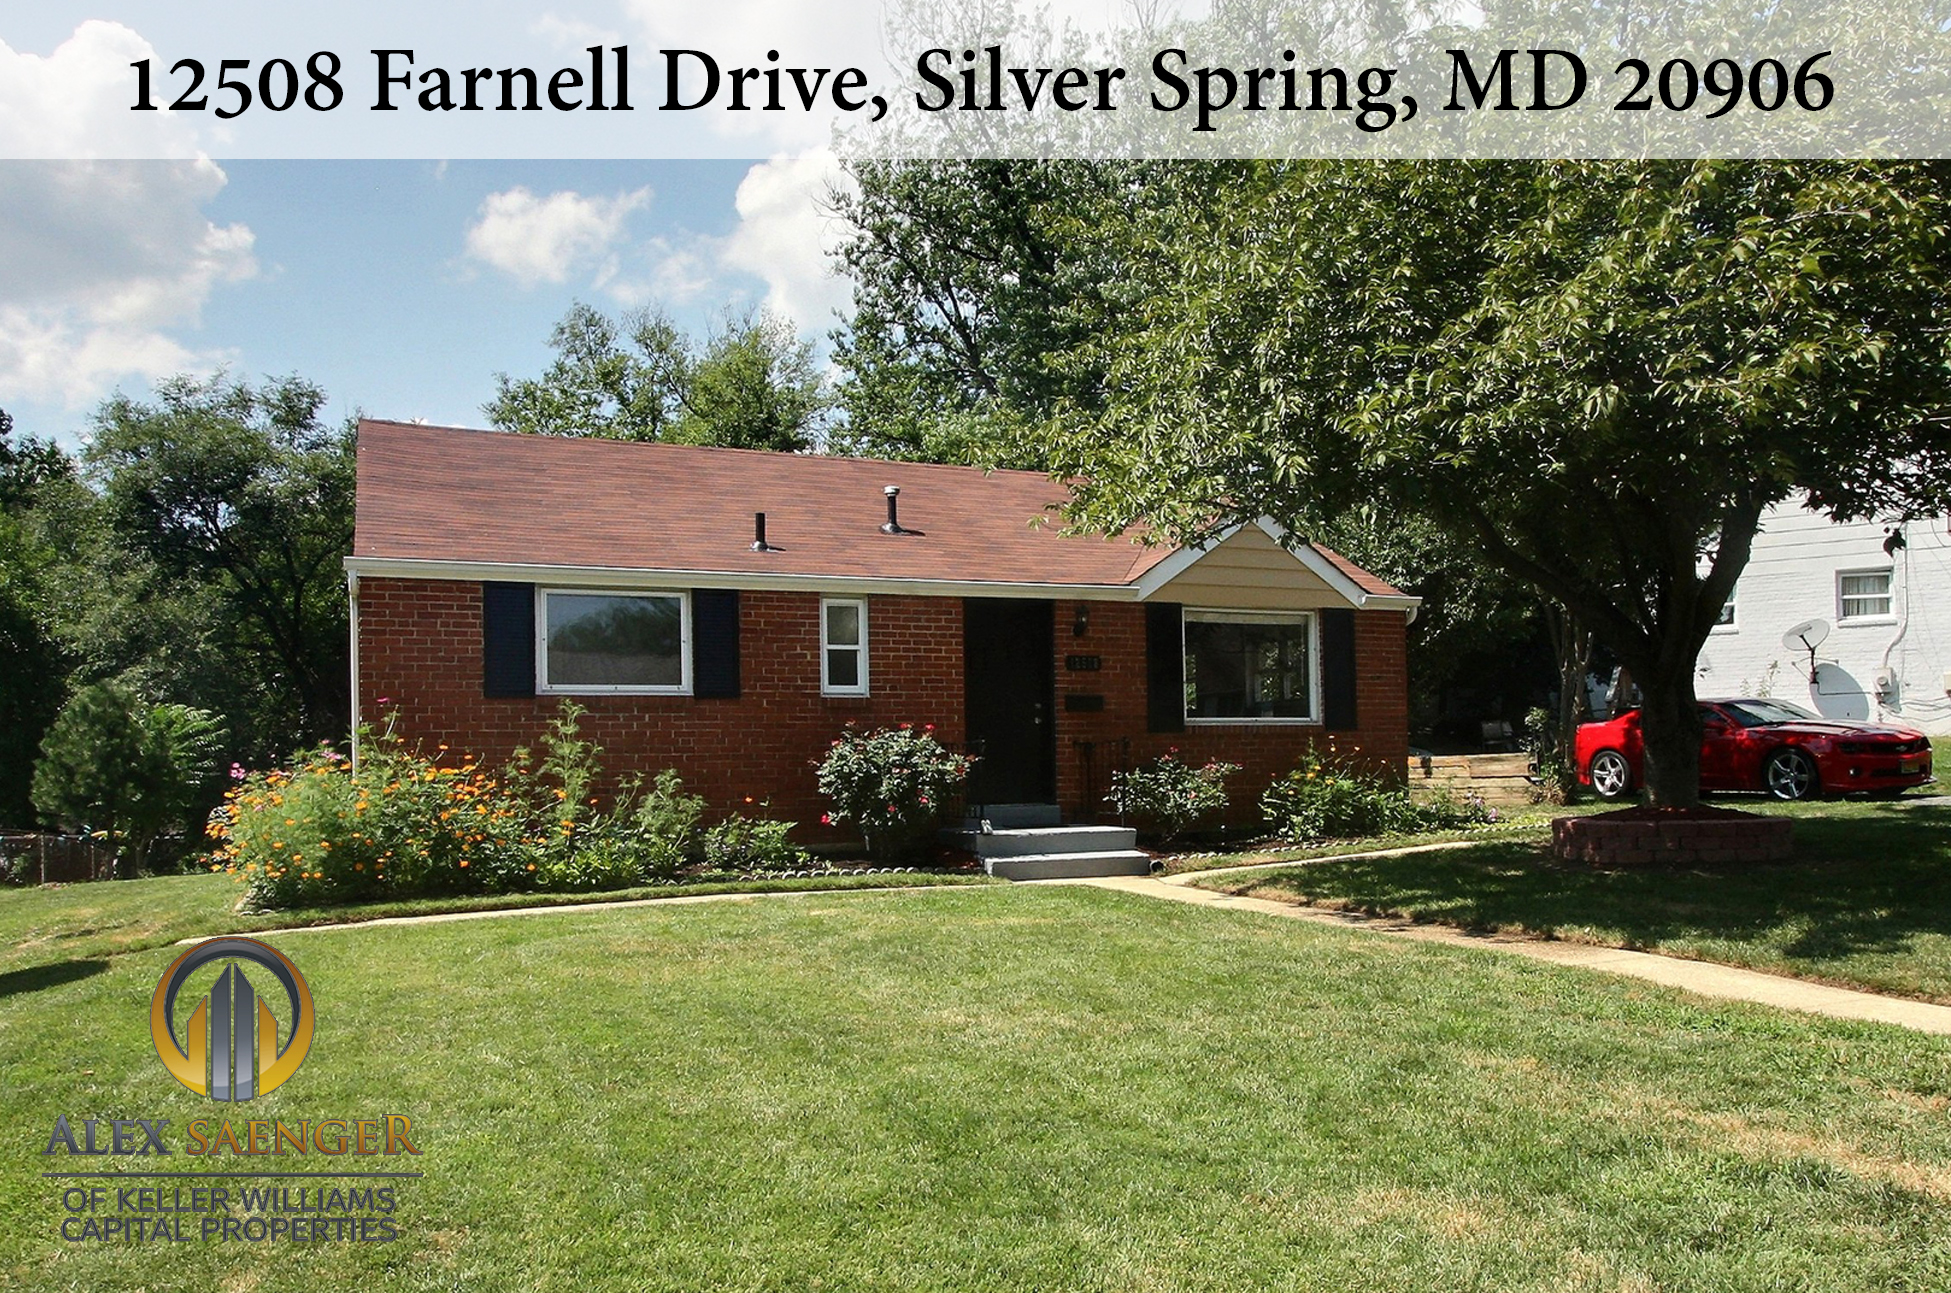 Farnell Drive, Silver Spring, MD 20906 is now on the market. This 4 ...